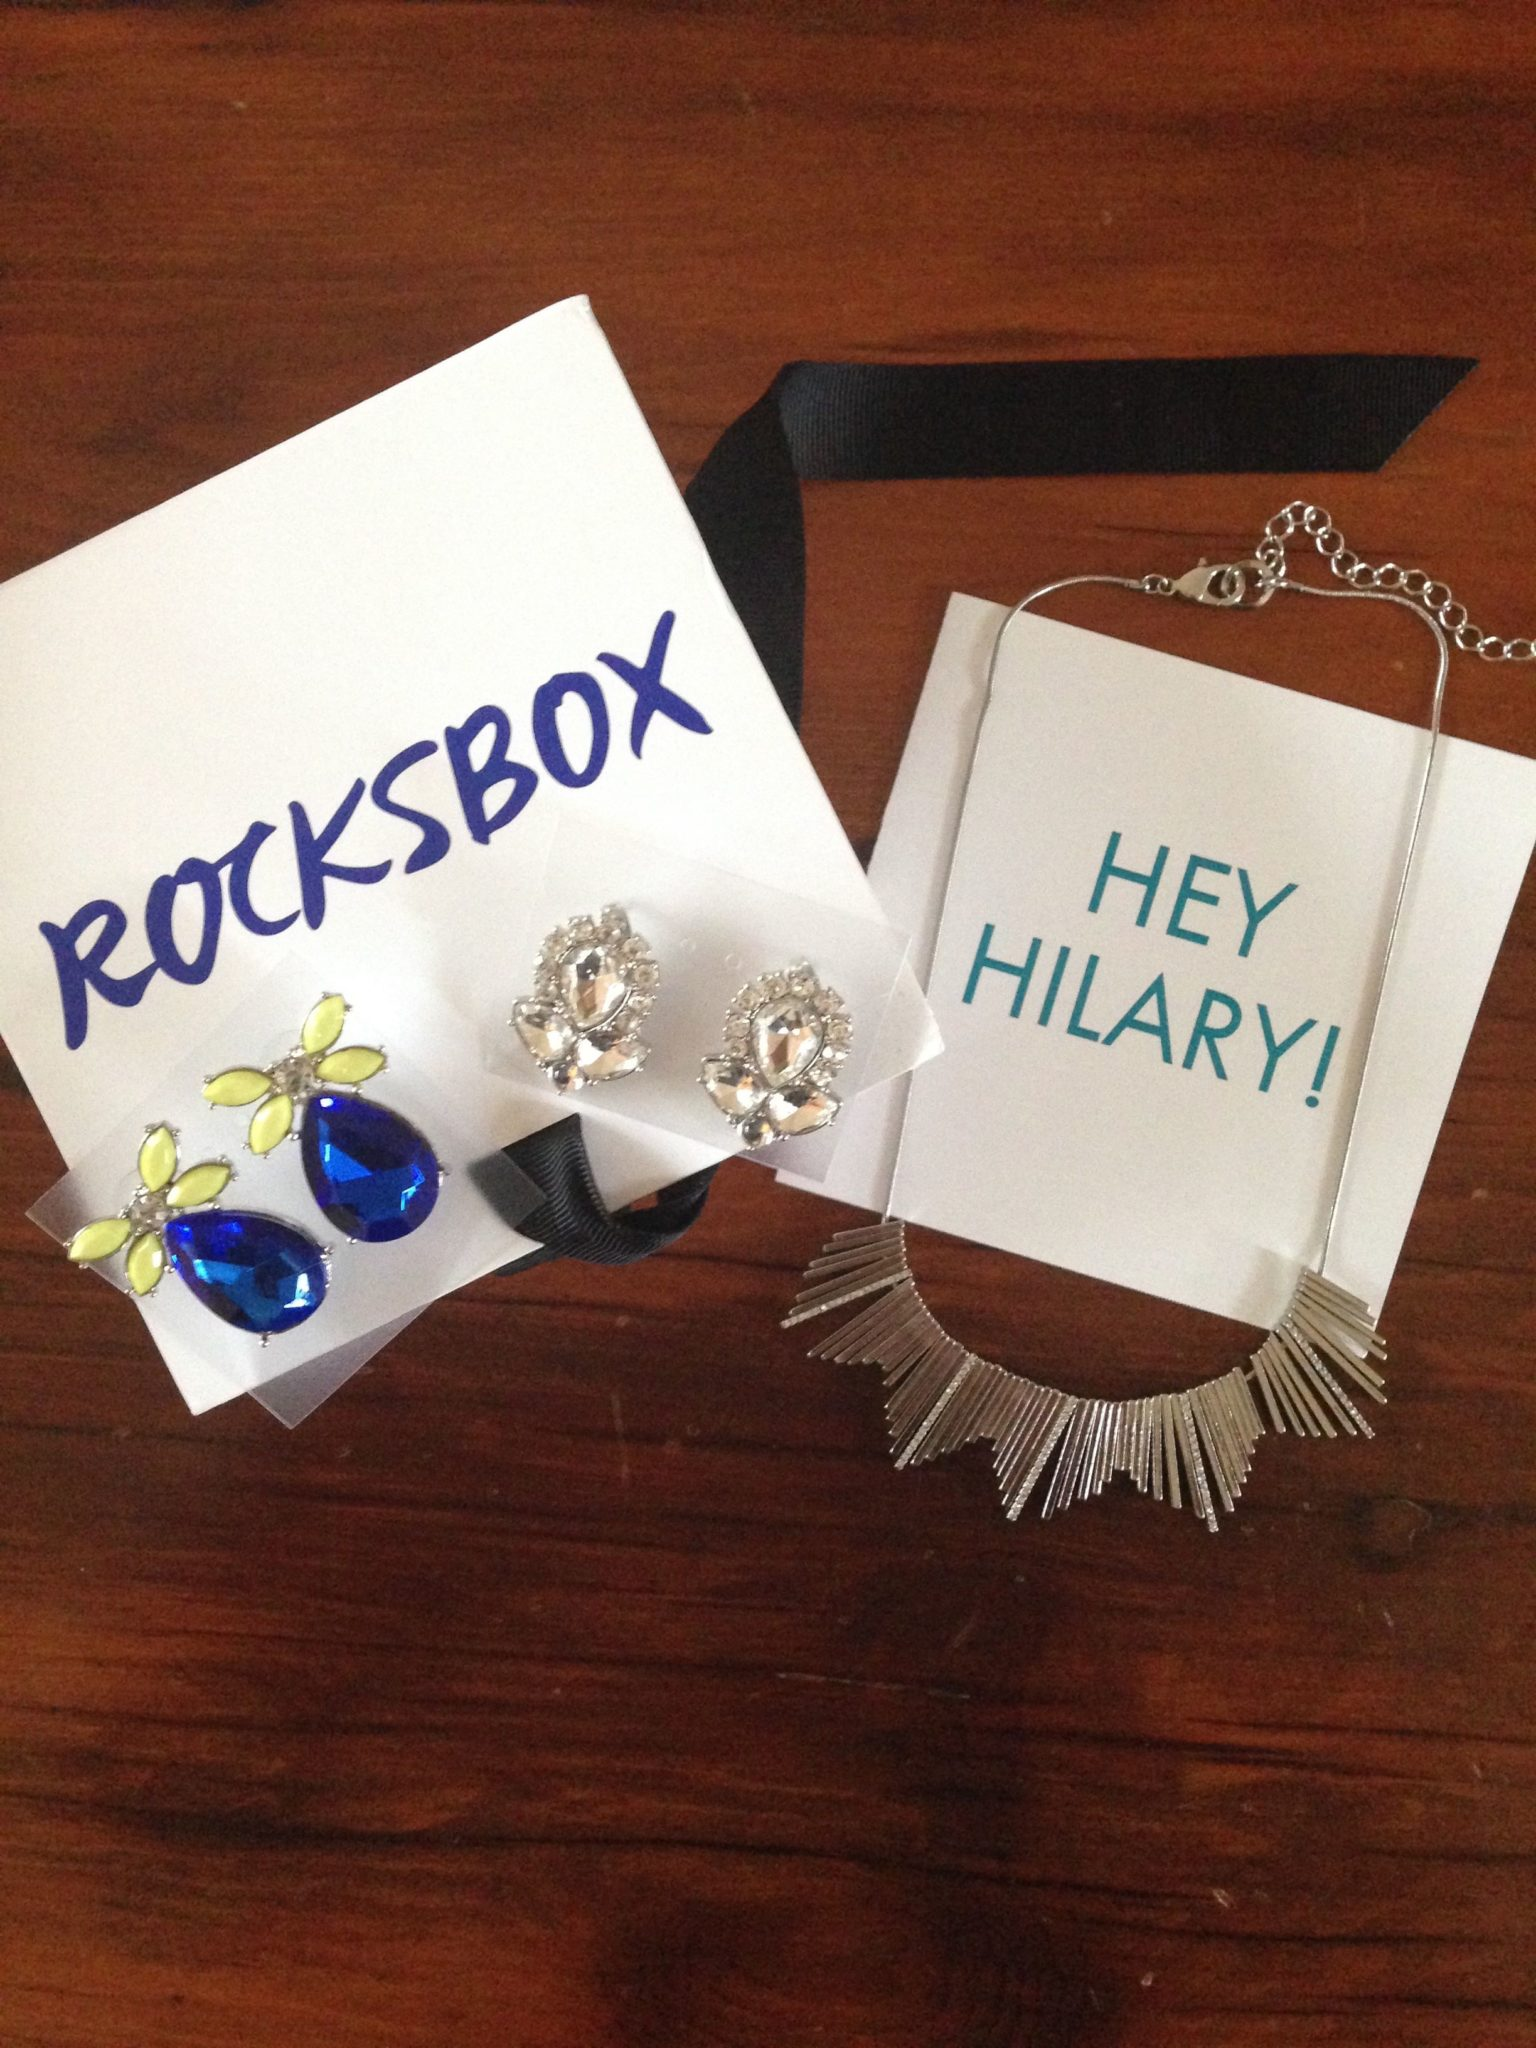 Friday Fresh Picks: Rocksbox Jewelry Subscription